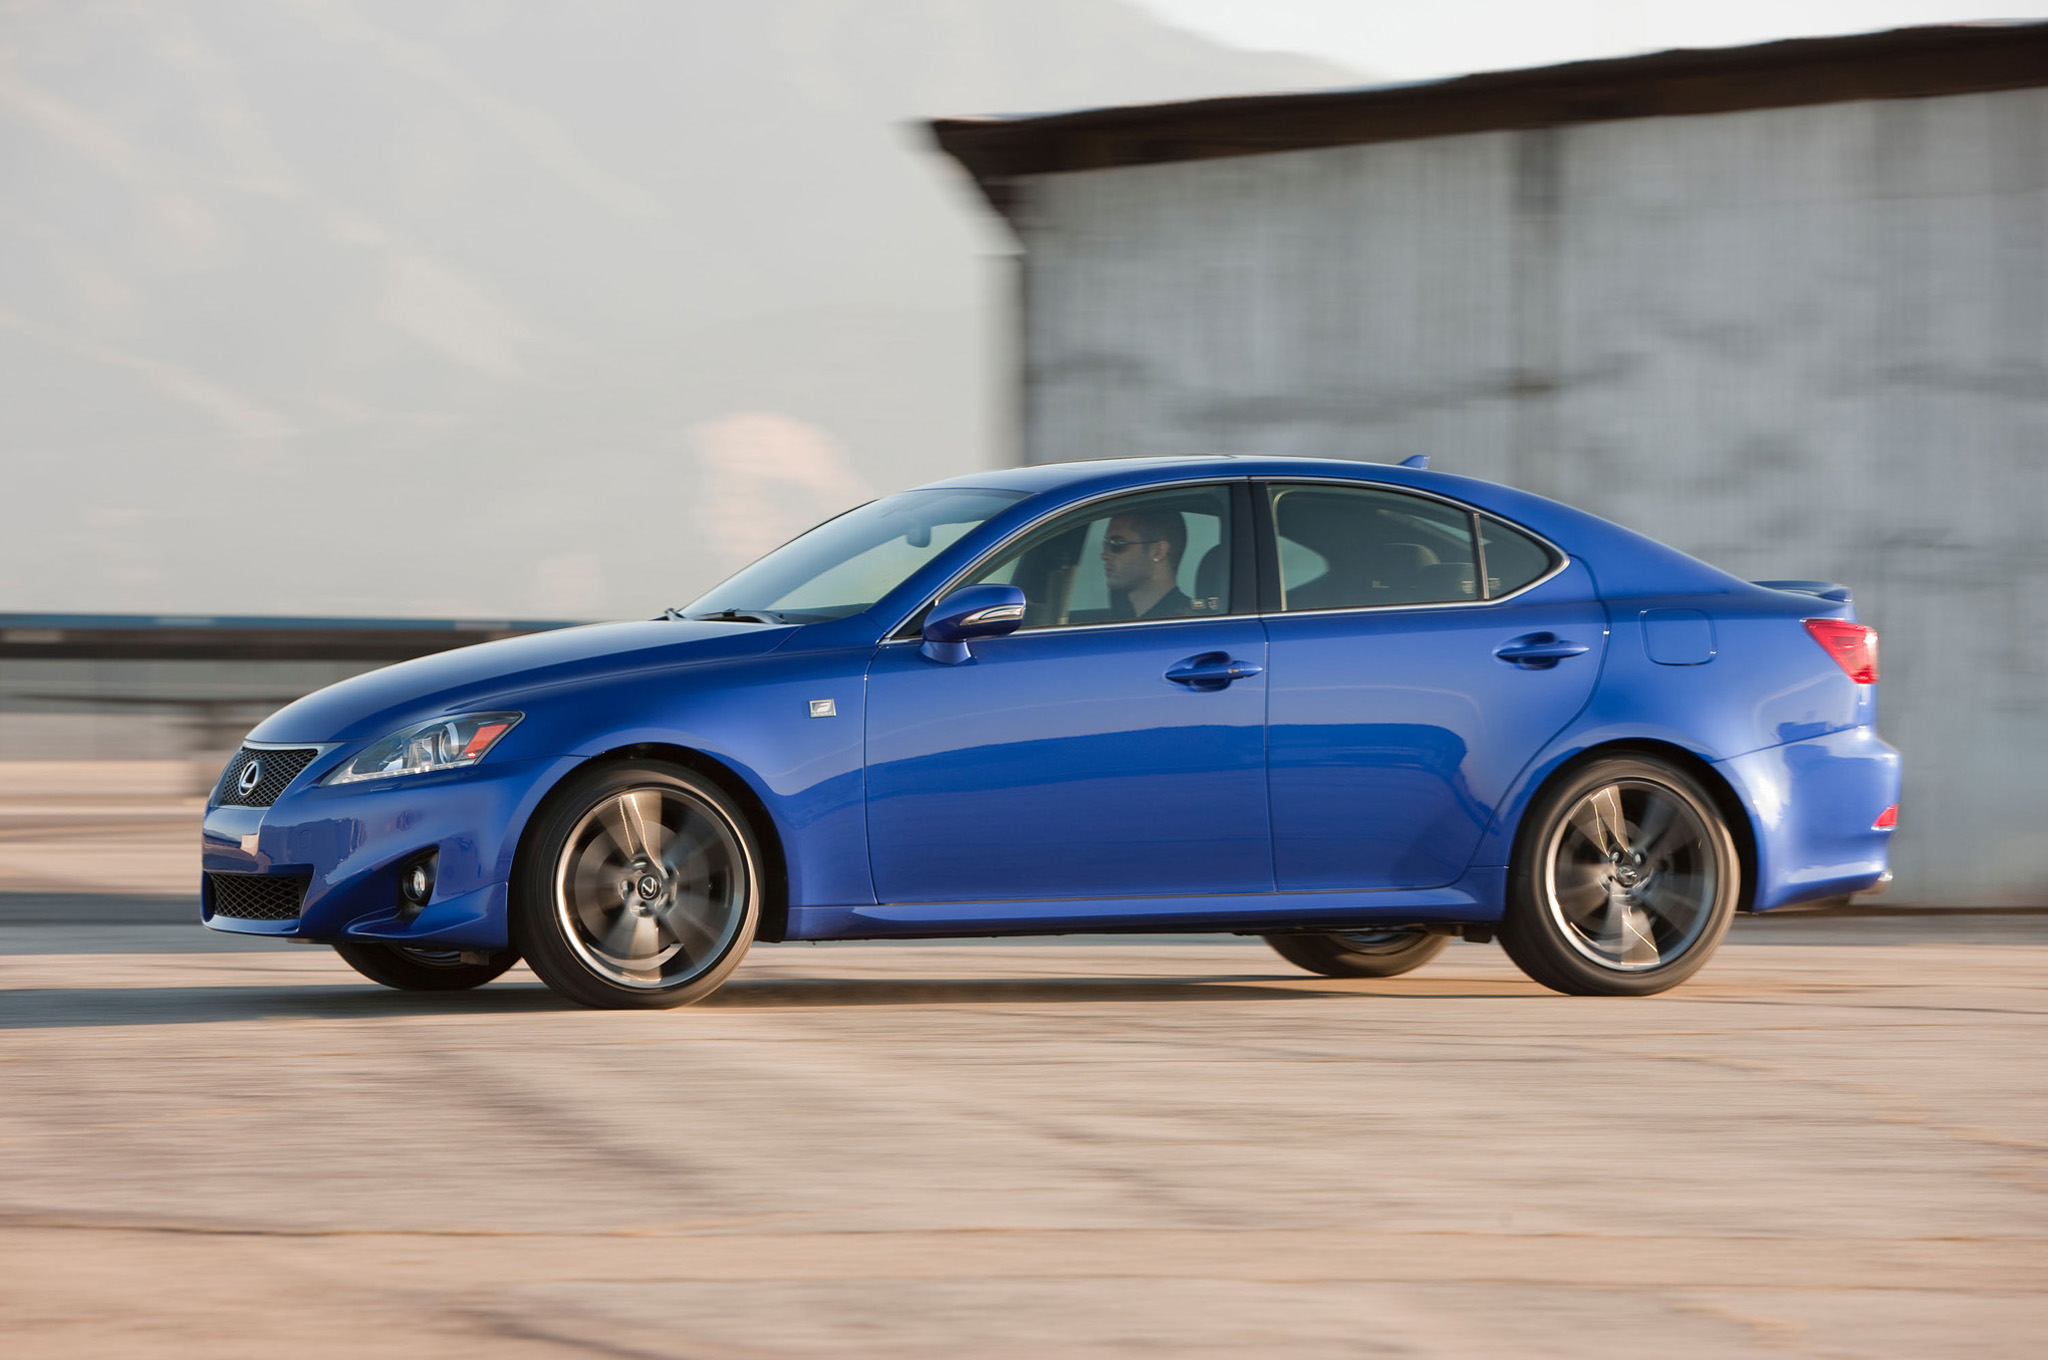 2013 Lexus Is F #23